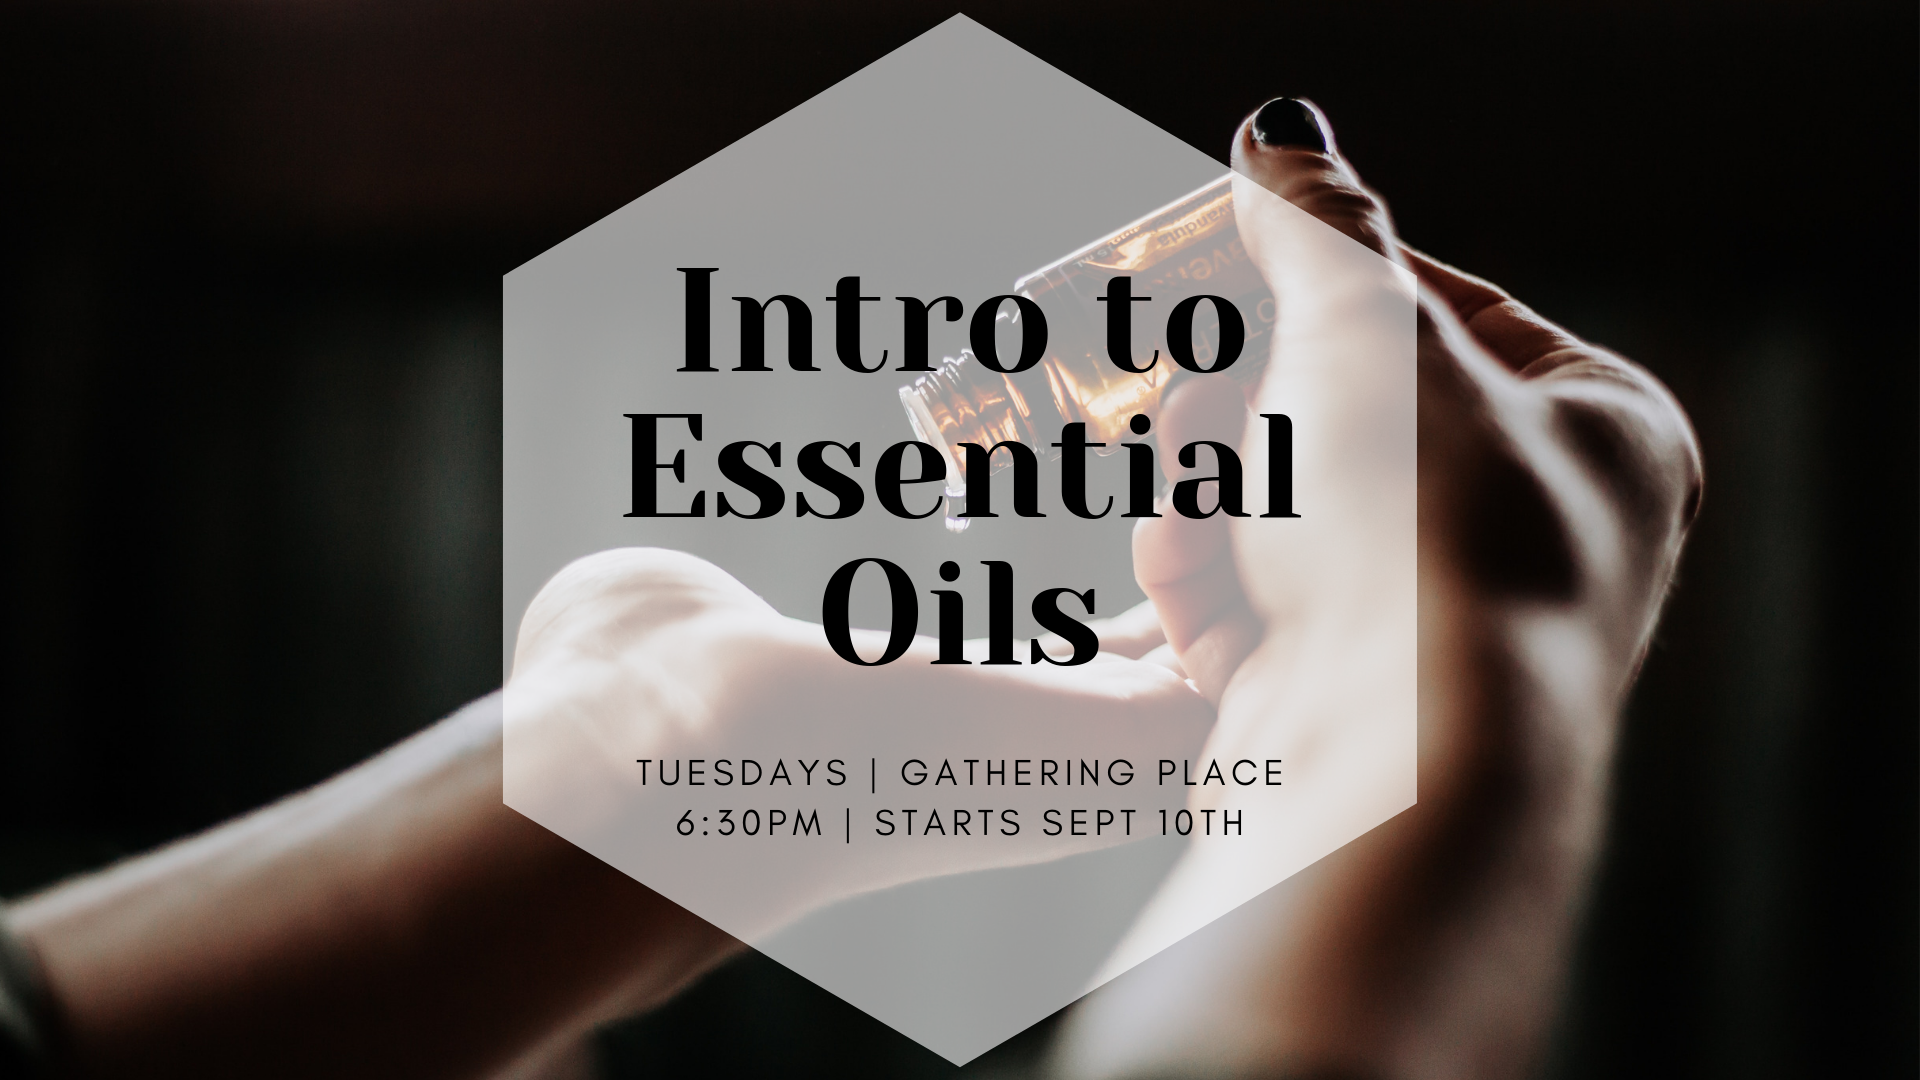 Copy of Intro to Essential Oils.png